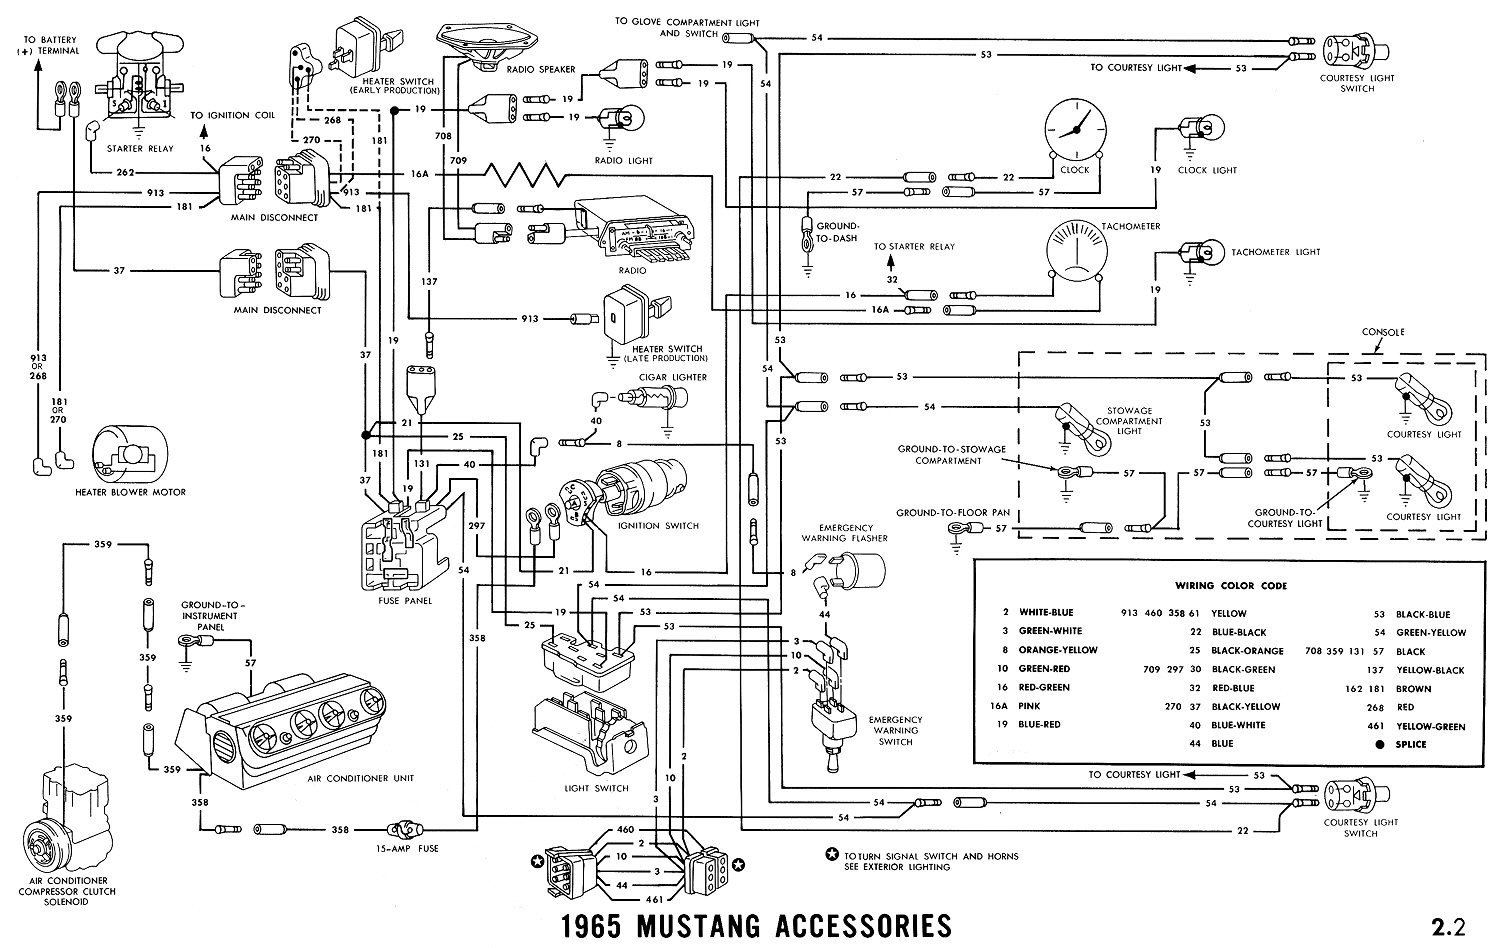 mustang wiring diagram ford mustang spark plug wiring diagram mustang wiring diagrams average joe restoration 1965 mustang accessories pictorial or schematic air conditioner